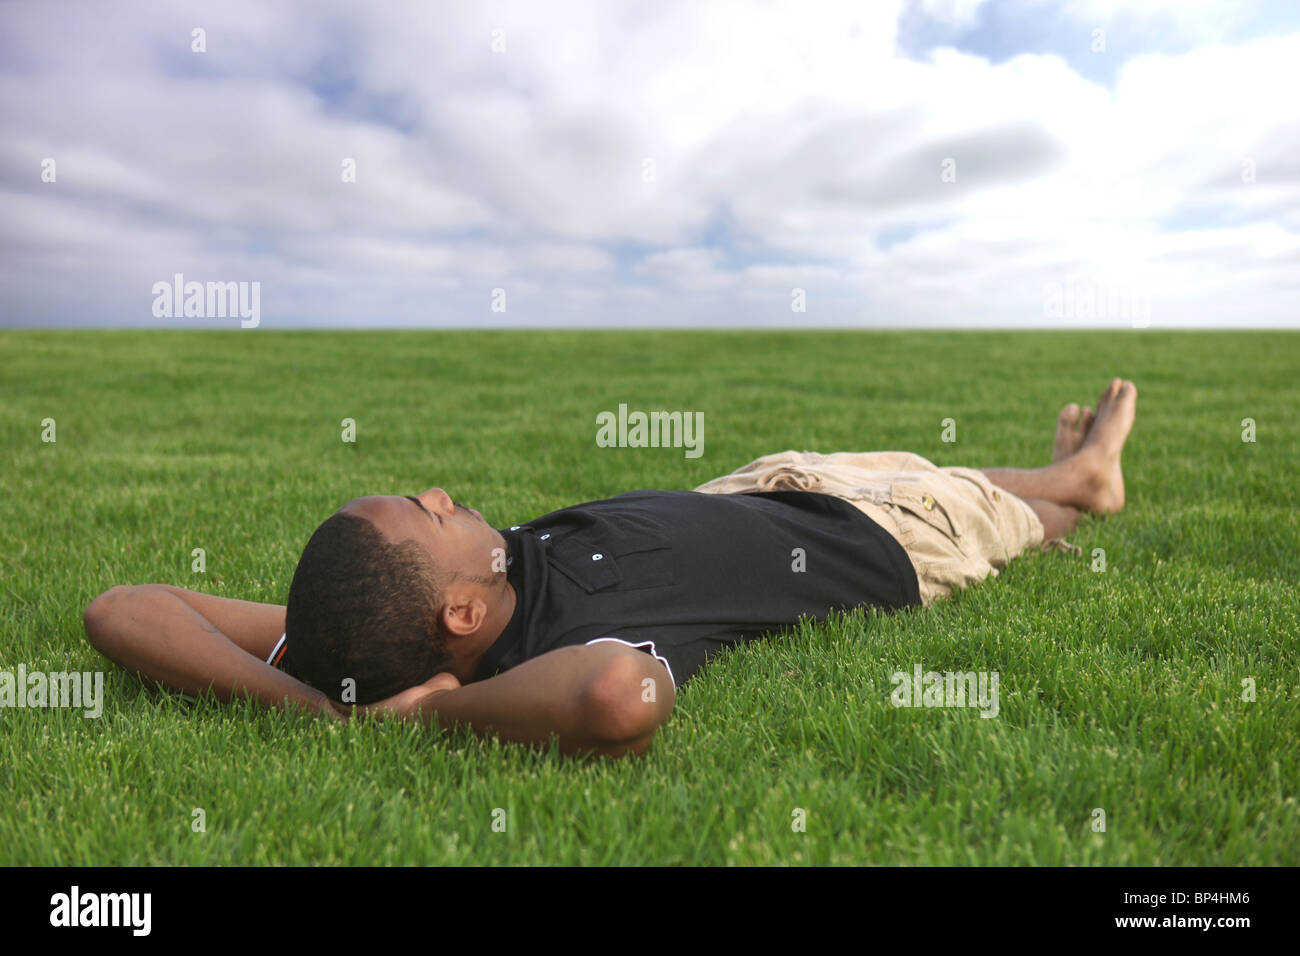 African American Male Student Resting in the Grass Outdoors - Stock Image